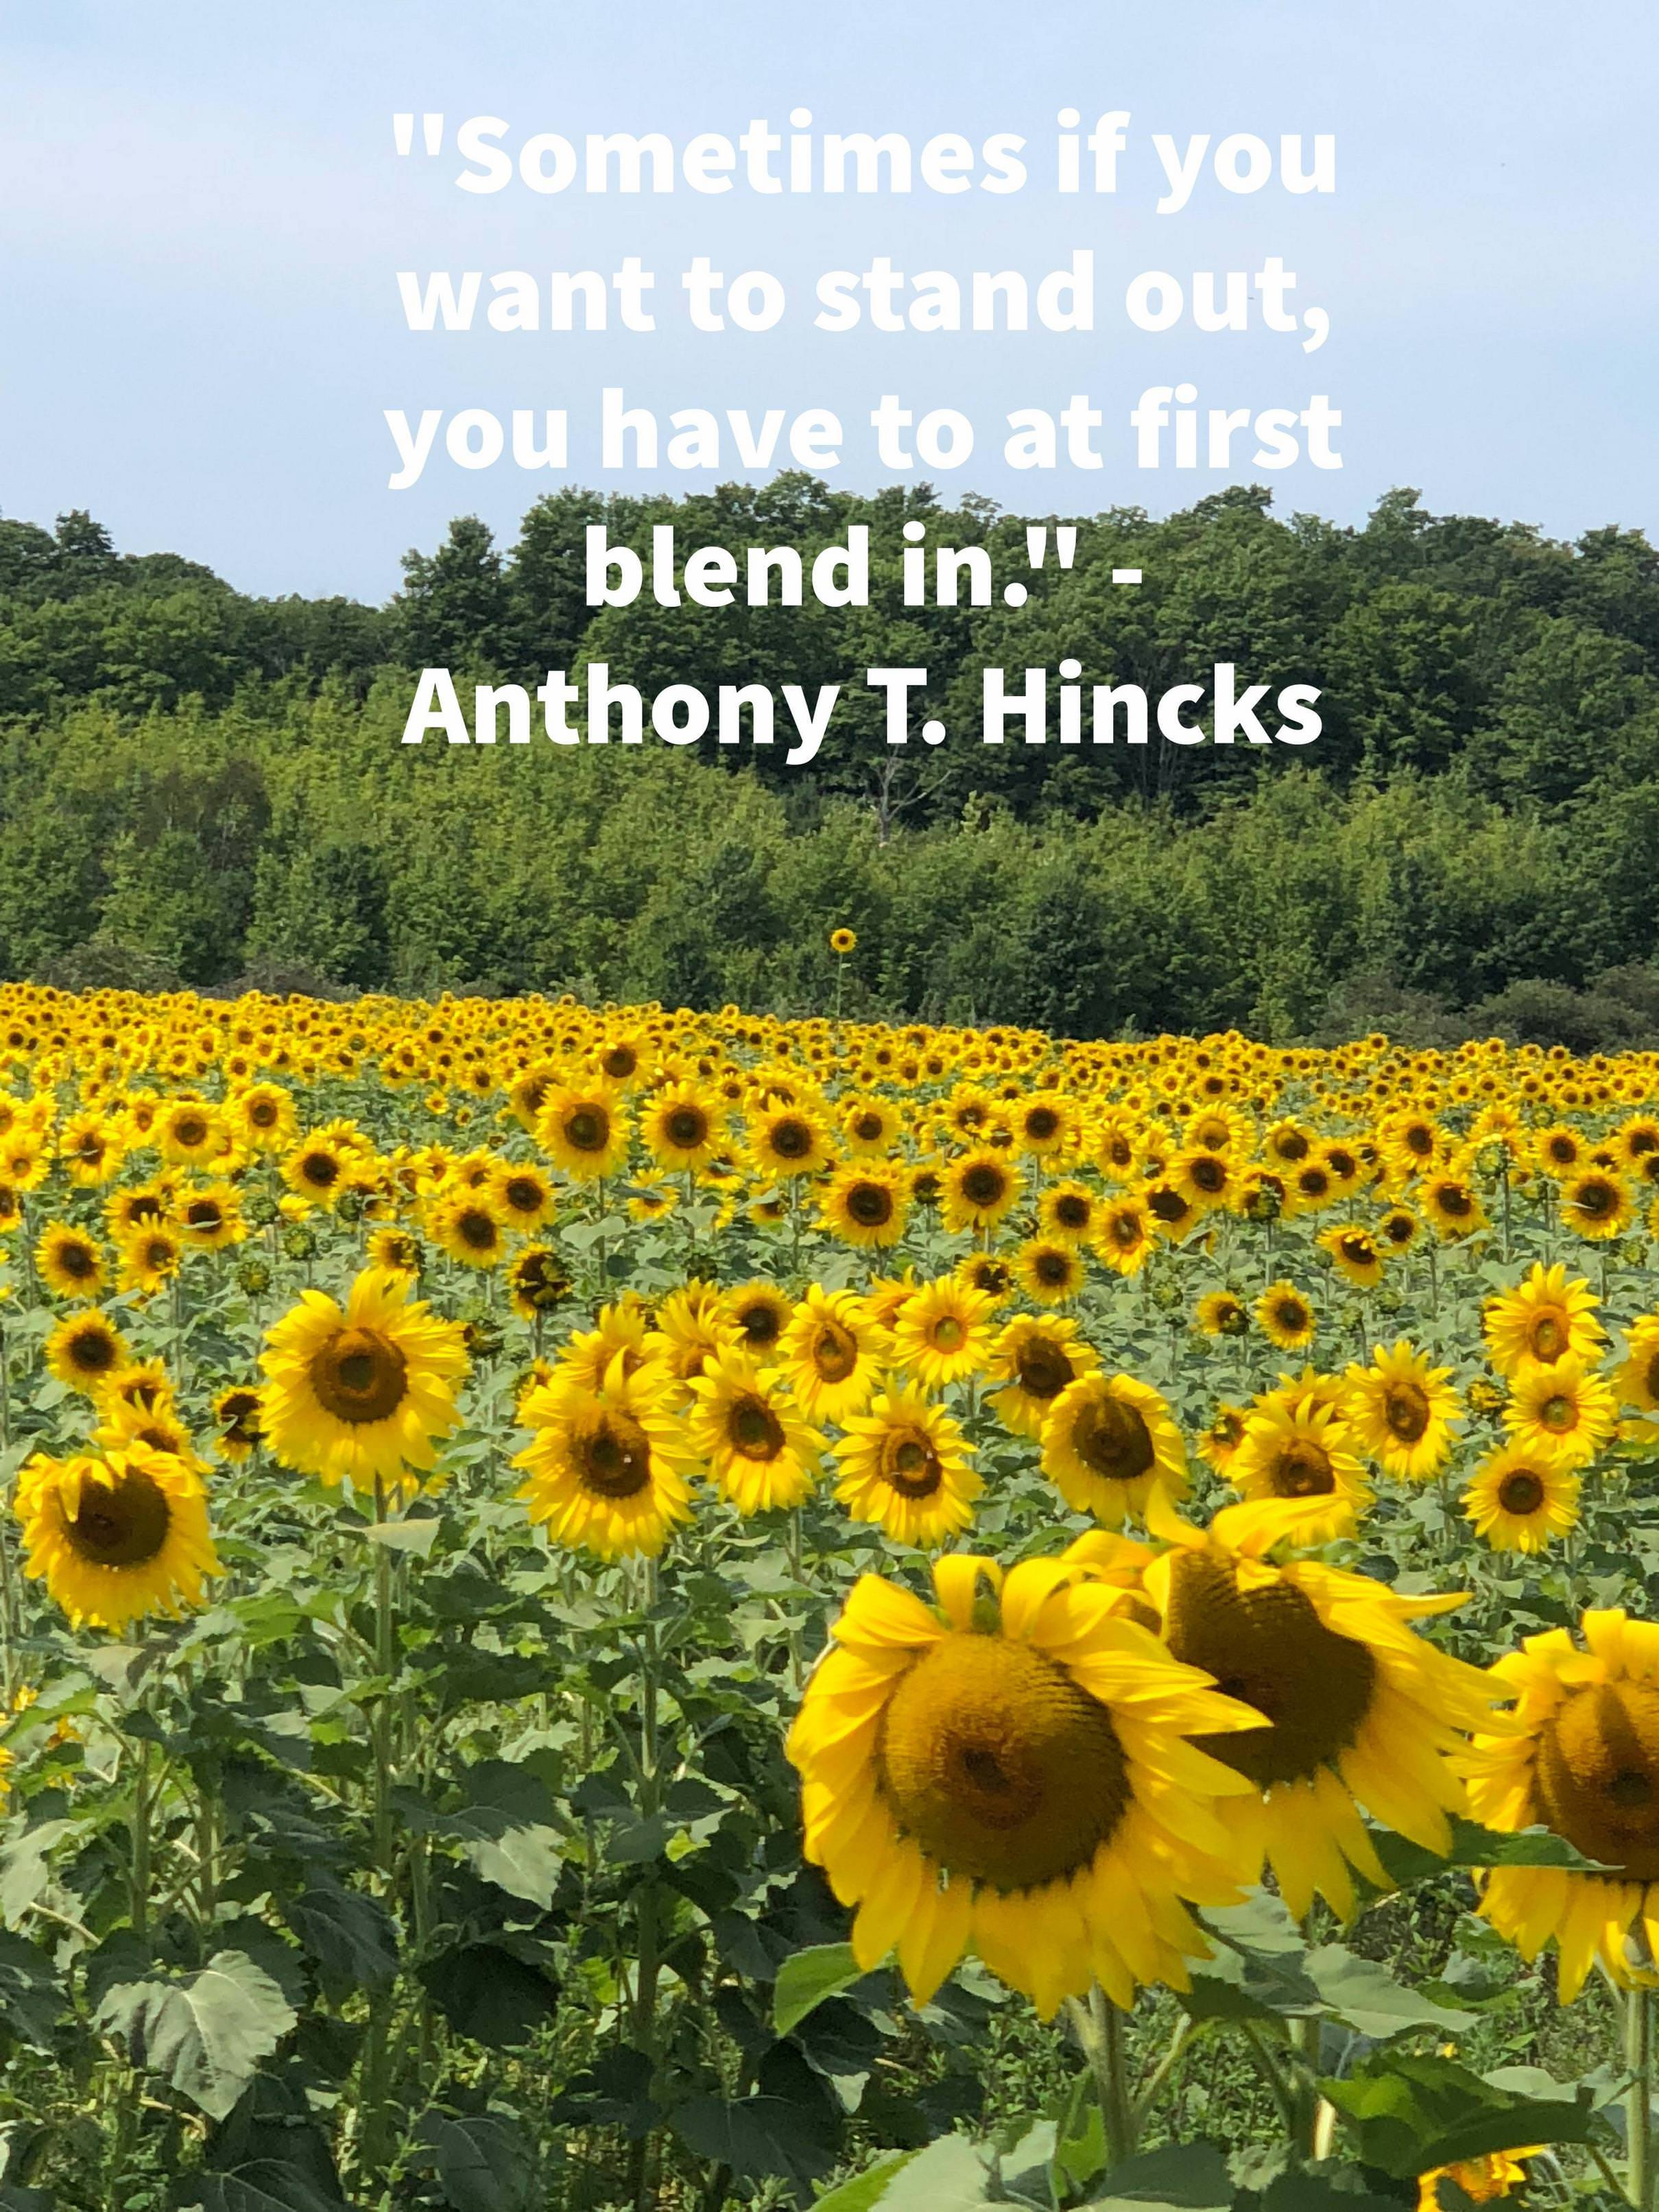 """Sometimes if you want to stand out, you have to at first blend in."" -Anthony T. Hincks [3024 x 4032]"